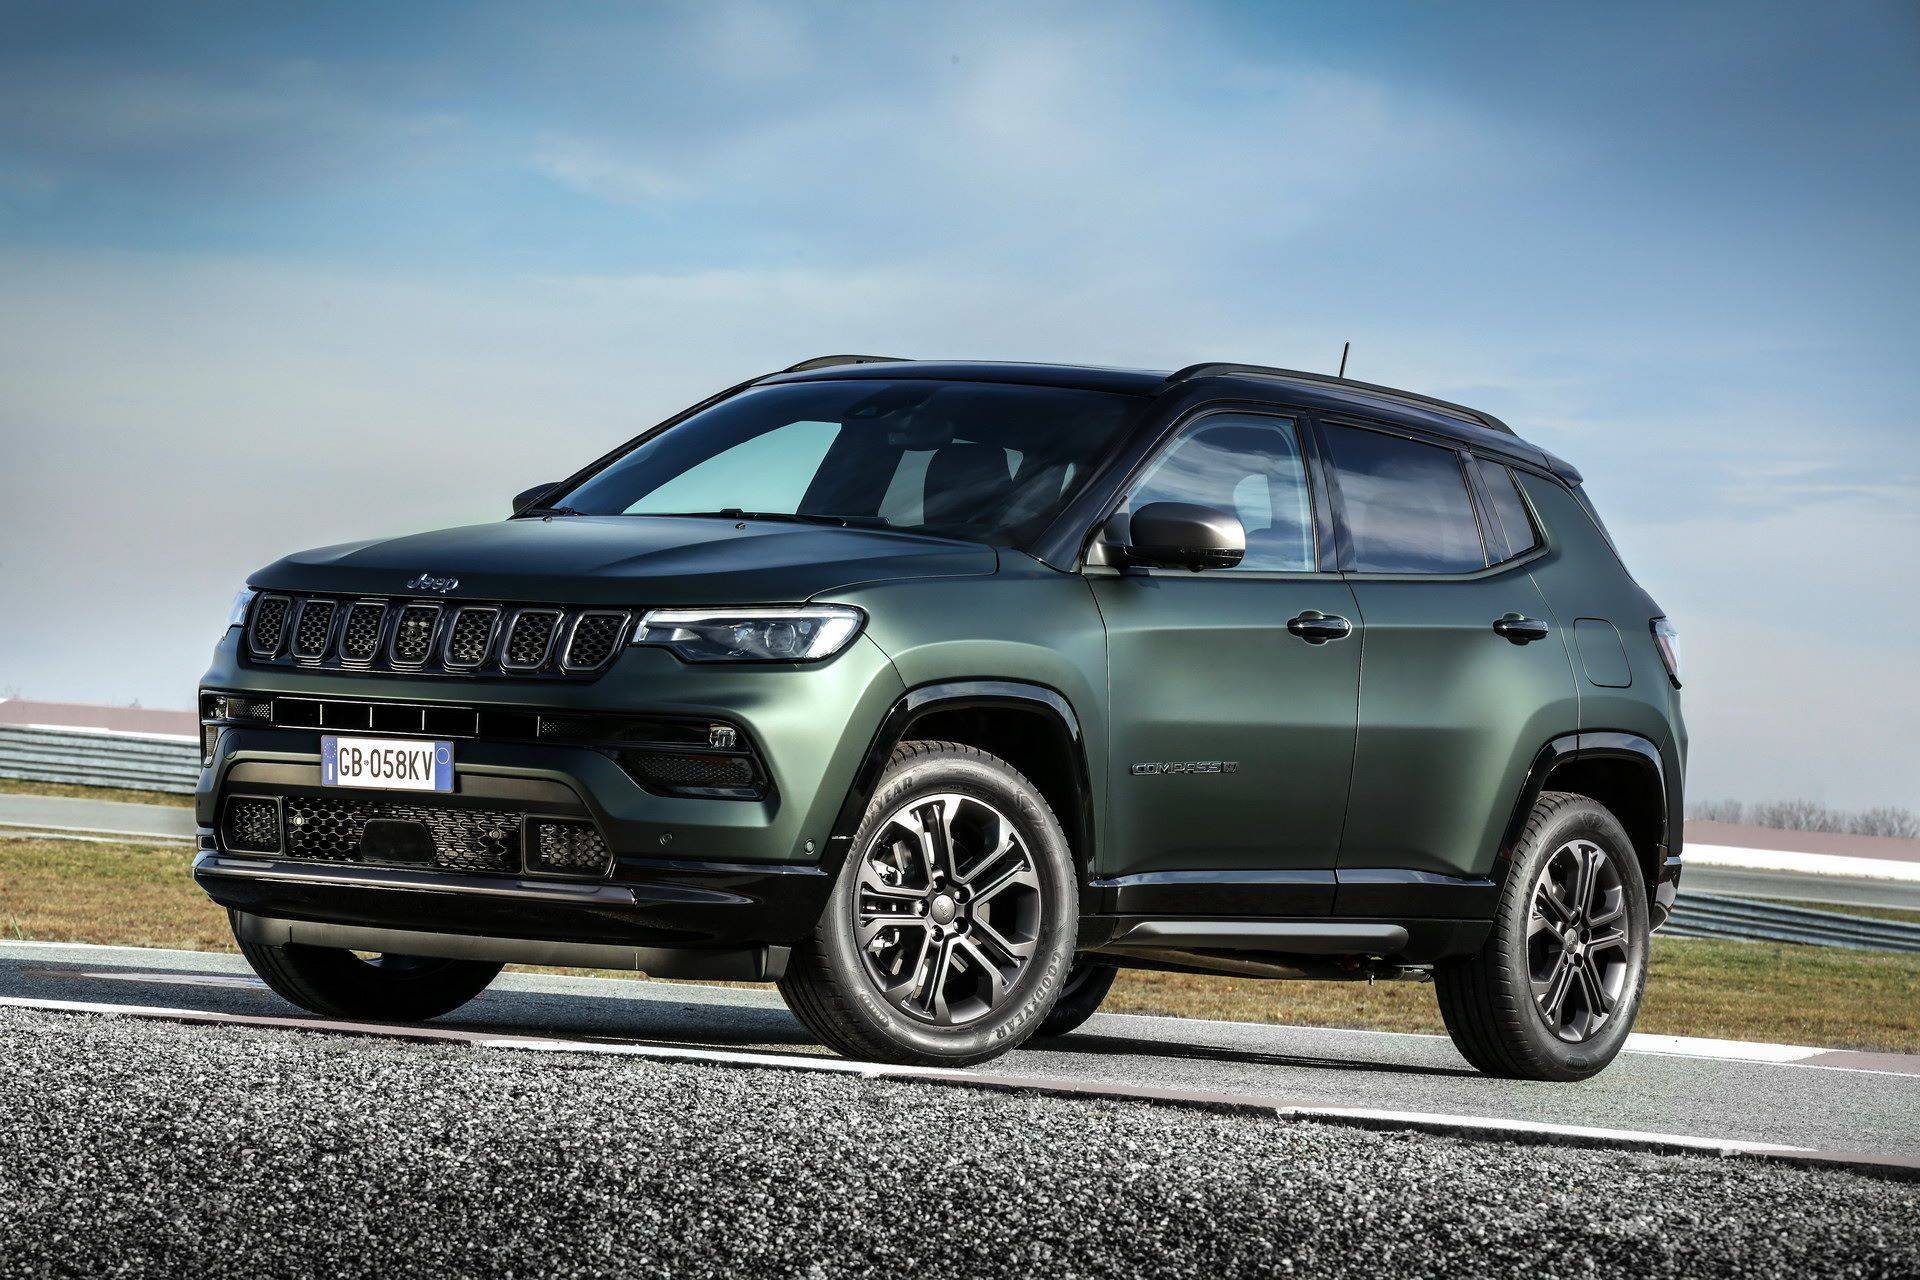 Jeep-Compass-facelift-2021-21